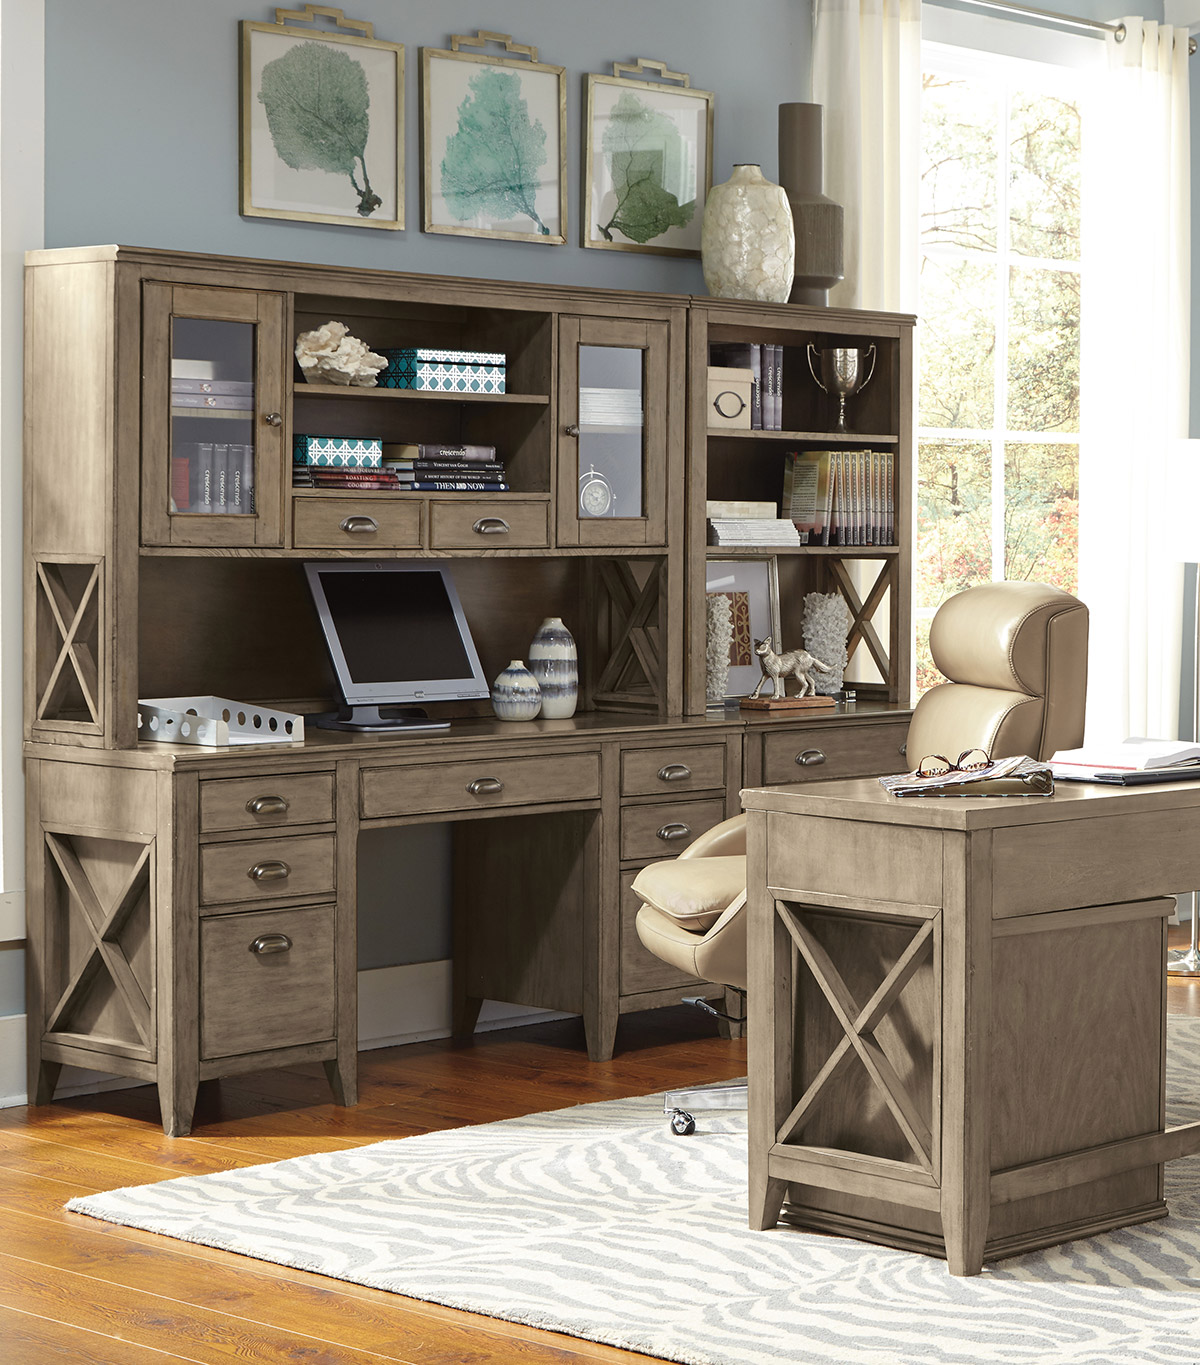 home office desk with storage hutch. Getting organized.